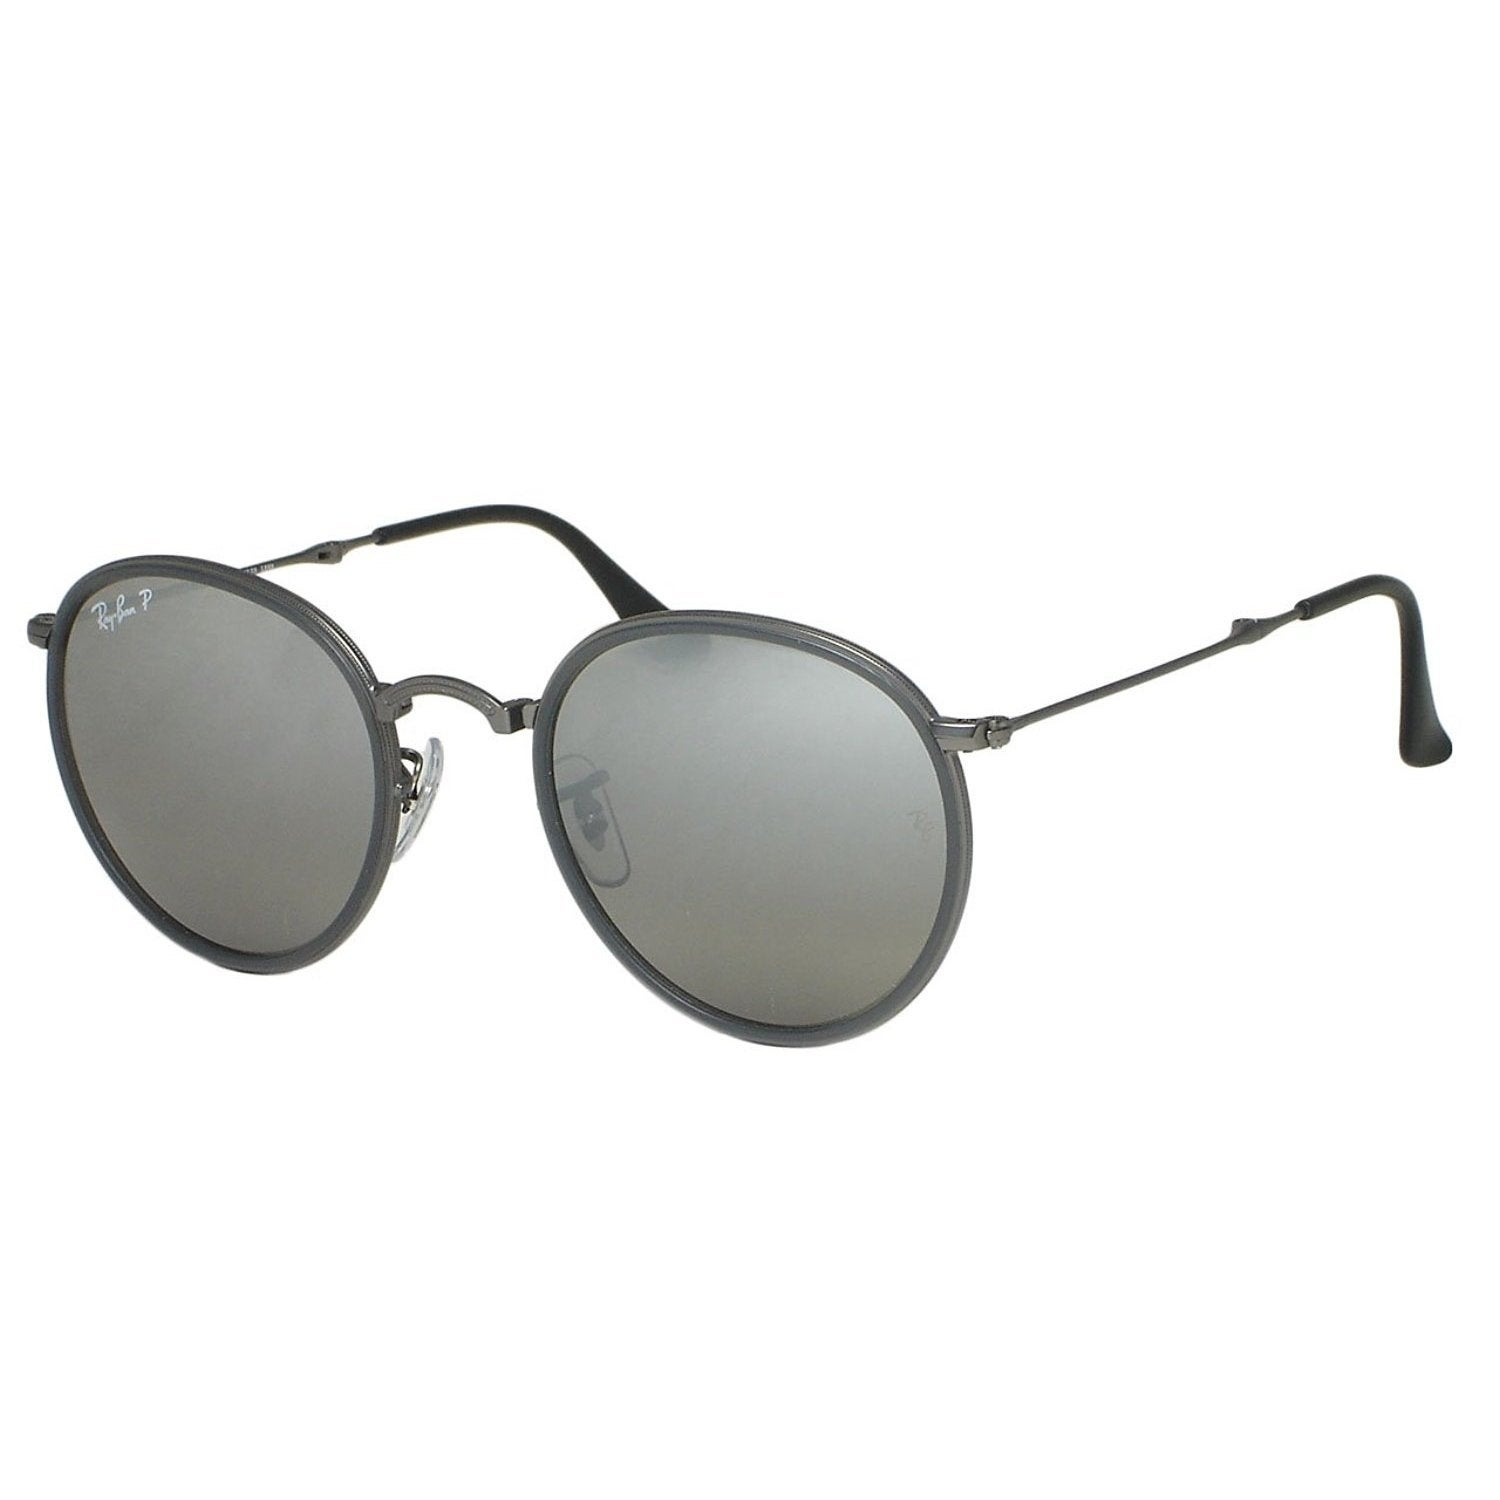 1ea562014e Shop Ray-Ban Round Folding RB3517 029 N8 Unisex Gunmetal Frame Polarized  Silver Gradient Lens Sunglasses - Free Shipping Today - Overstock - 15079508